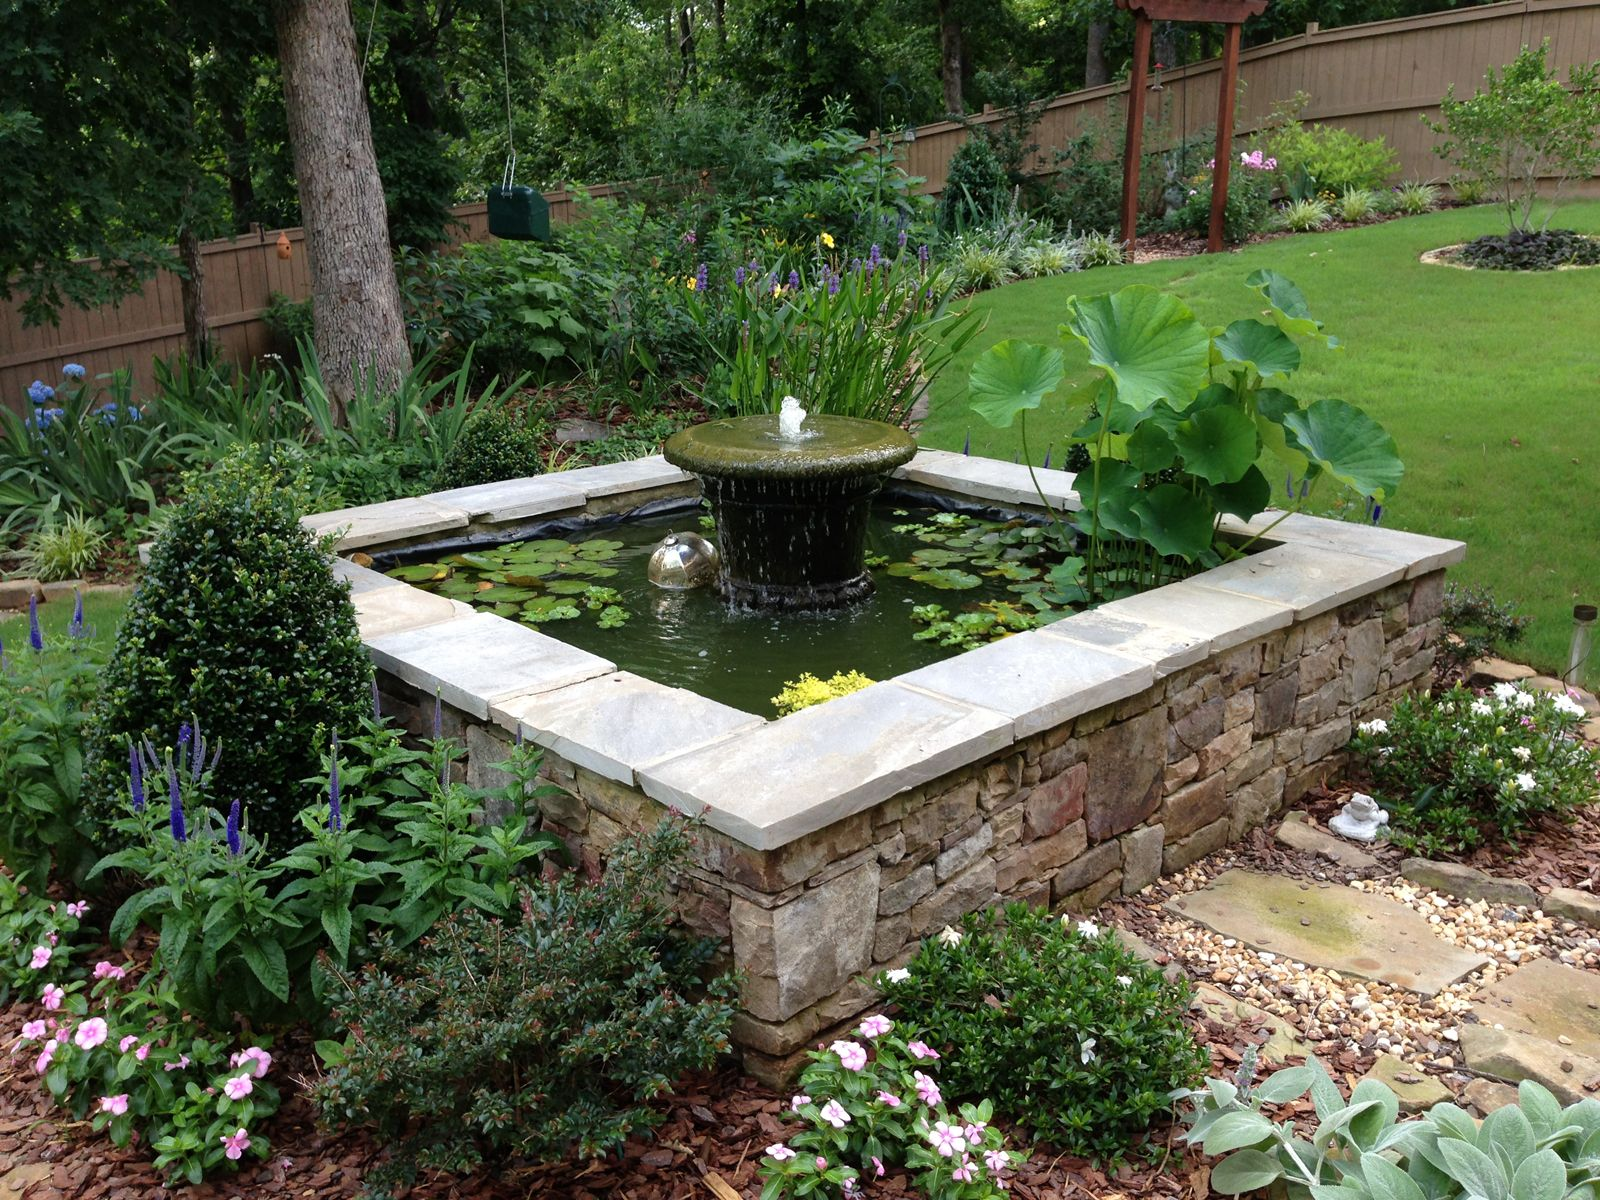 Square water pool carol bill 39 s garden in georgia Above ground koi pond design ideas